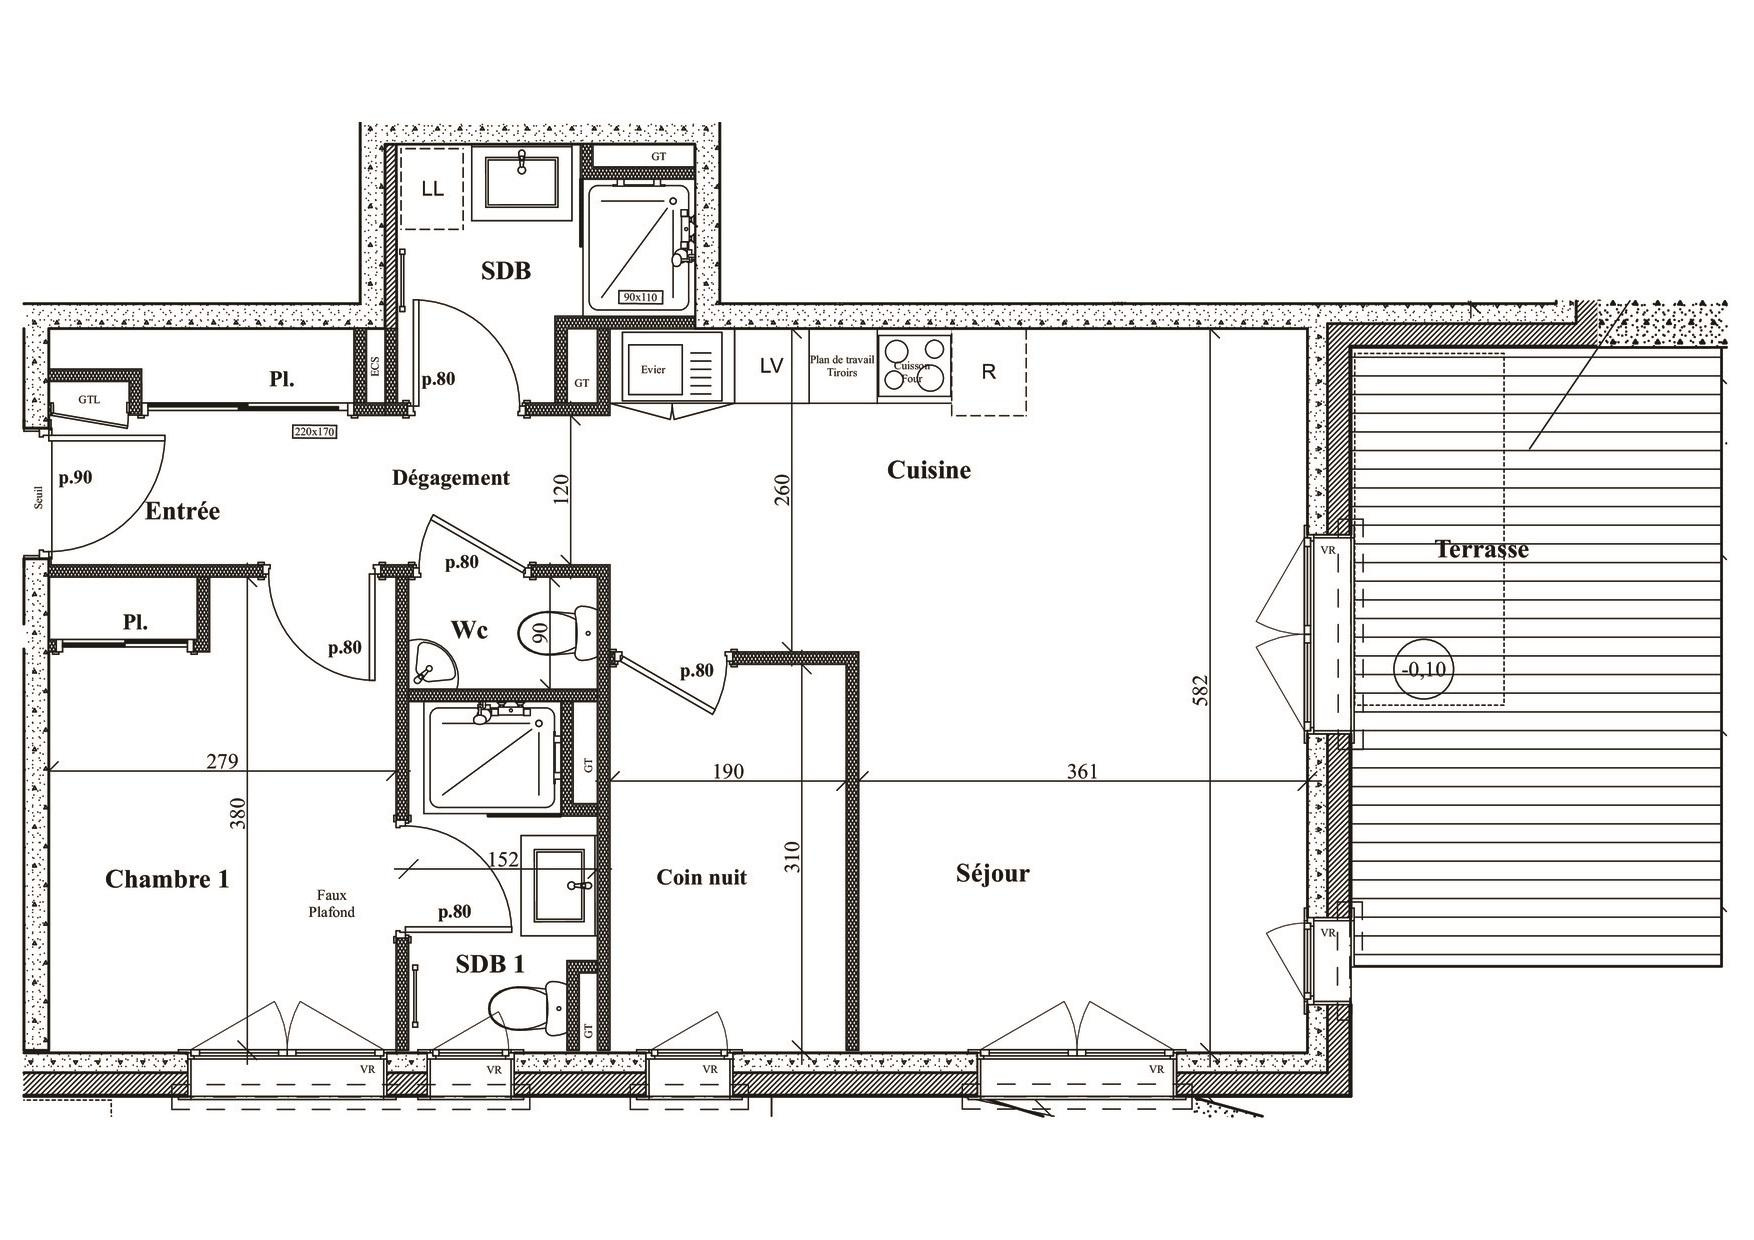 RESIDENCE 'LE GREEN' - 3 ROOM FLAT OF 58.38M2